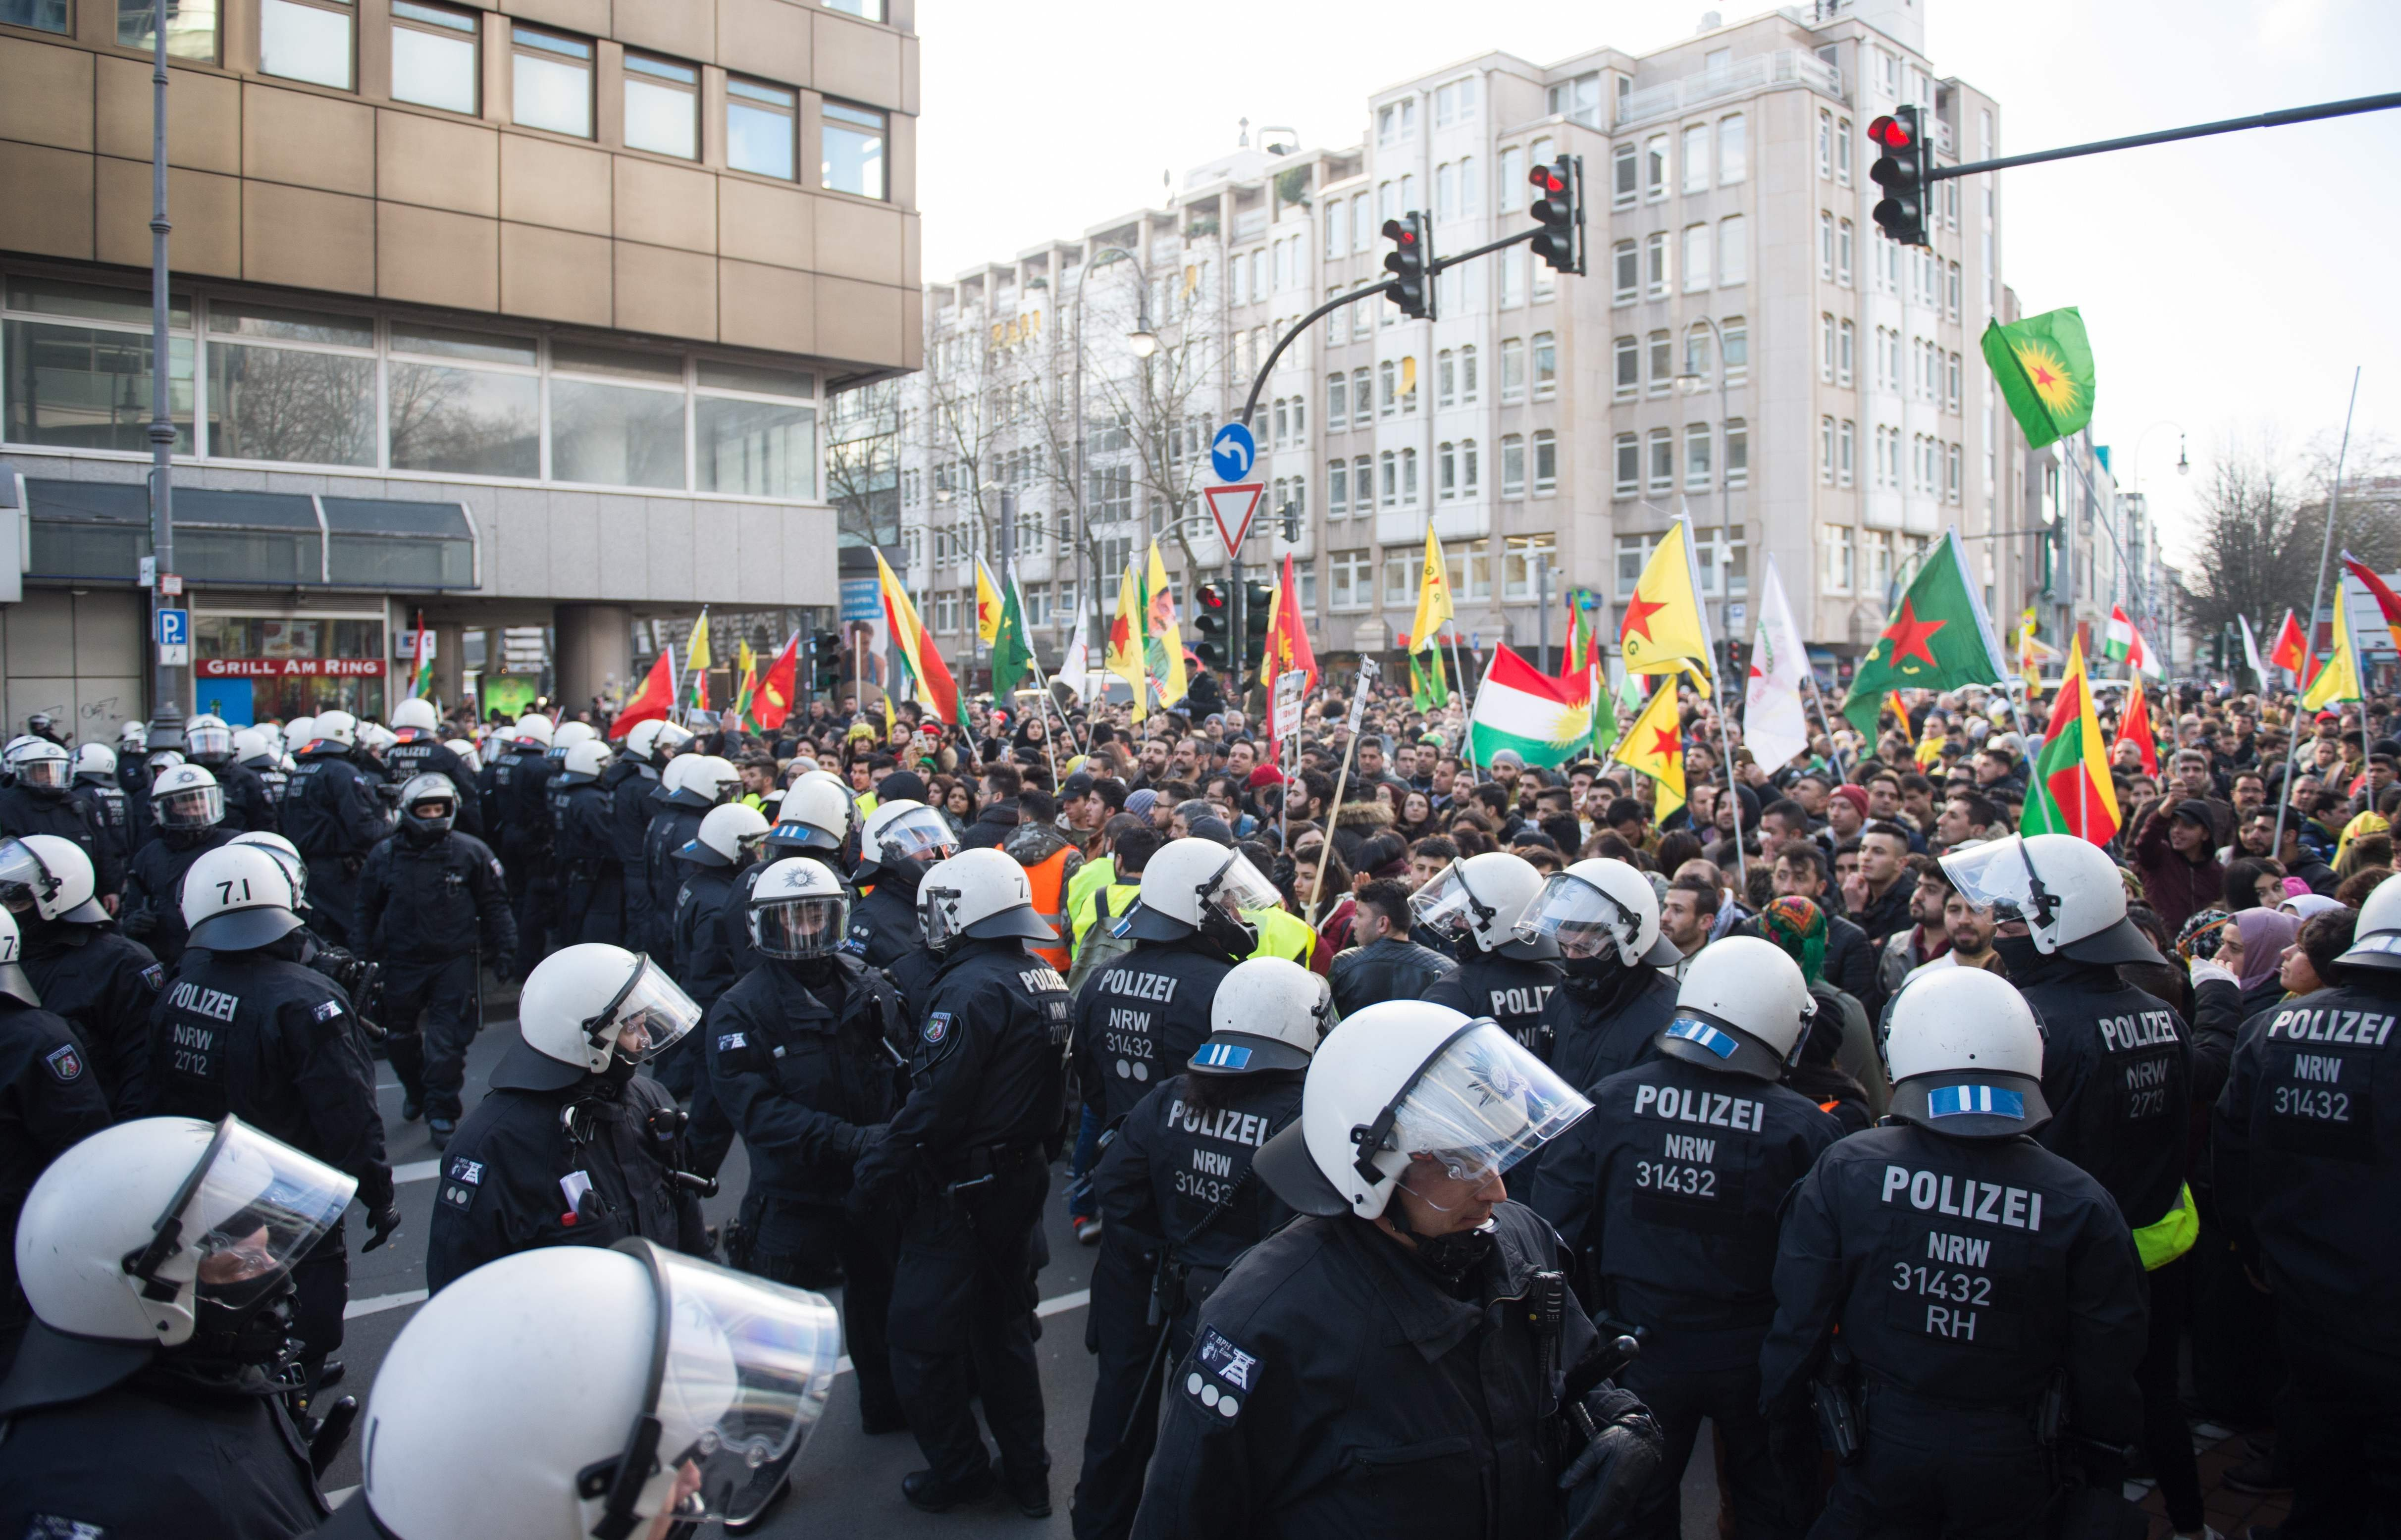 Police officers stop a mass demonstration by in Cologne with more than 20,000 PKK supporters protesting against the Turkish military operation in the Syrian enclave of Afrin, on January 27, 2018. (AFP Photo)